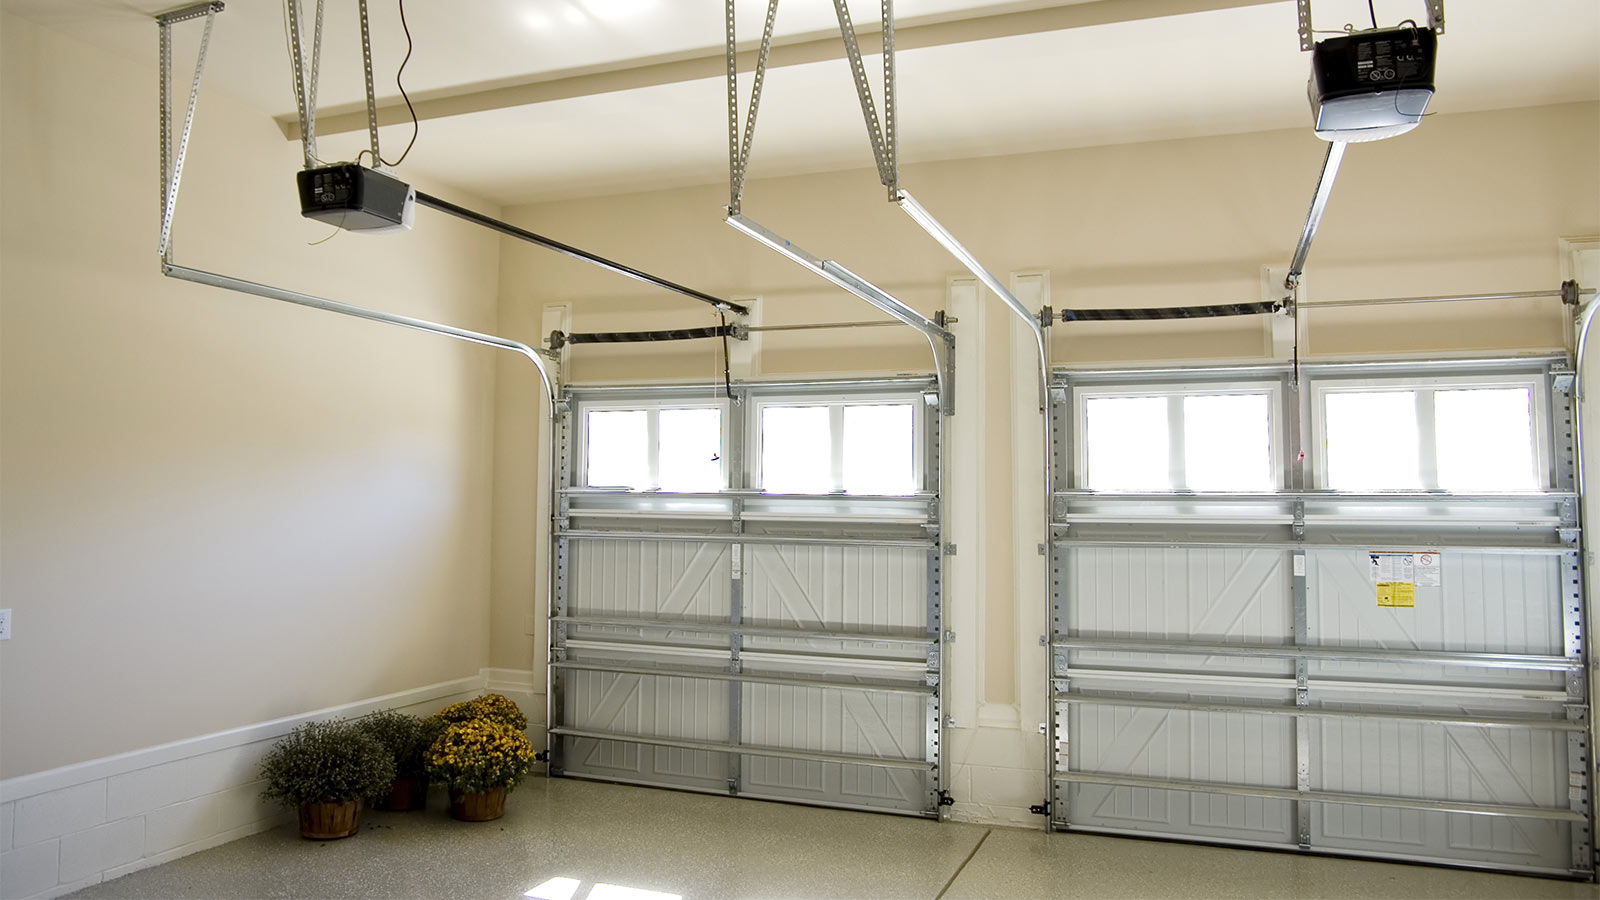 Sectional Garage Doors from Window Roller Shutters Grays suppliers.